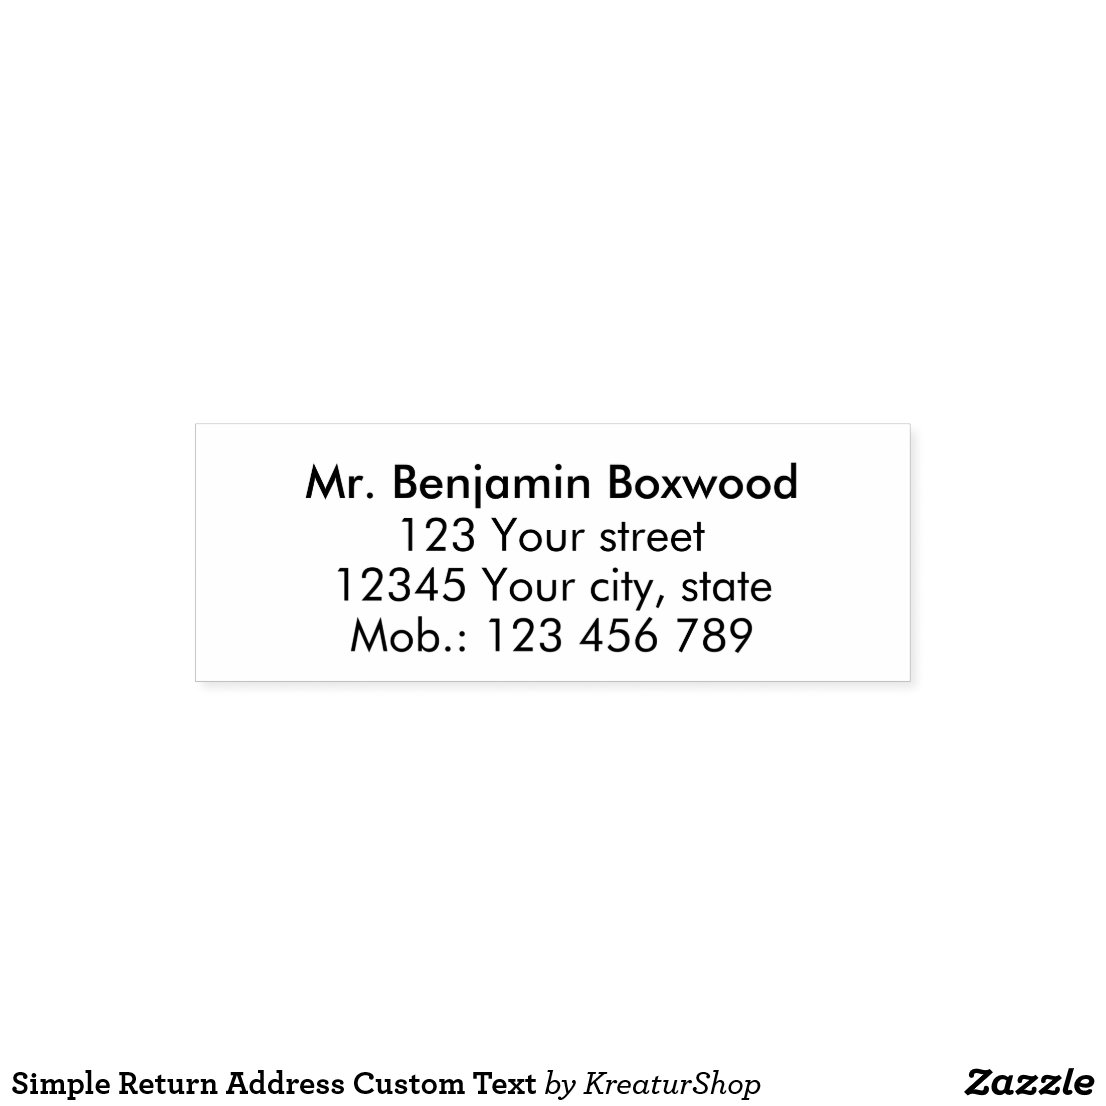 Simple Return Address Custom Text